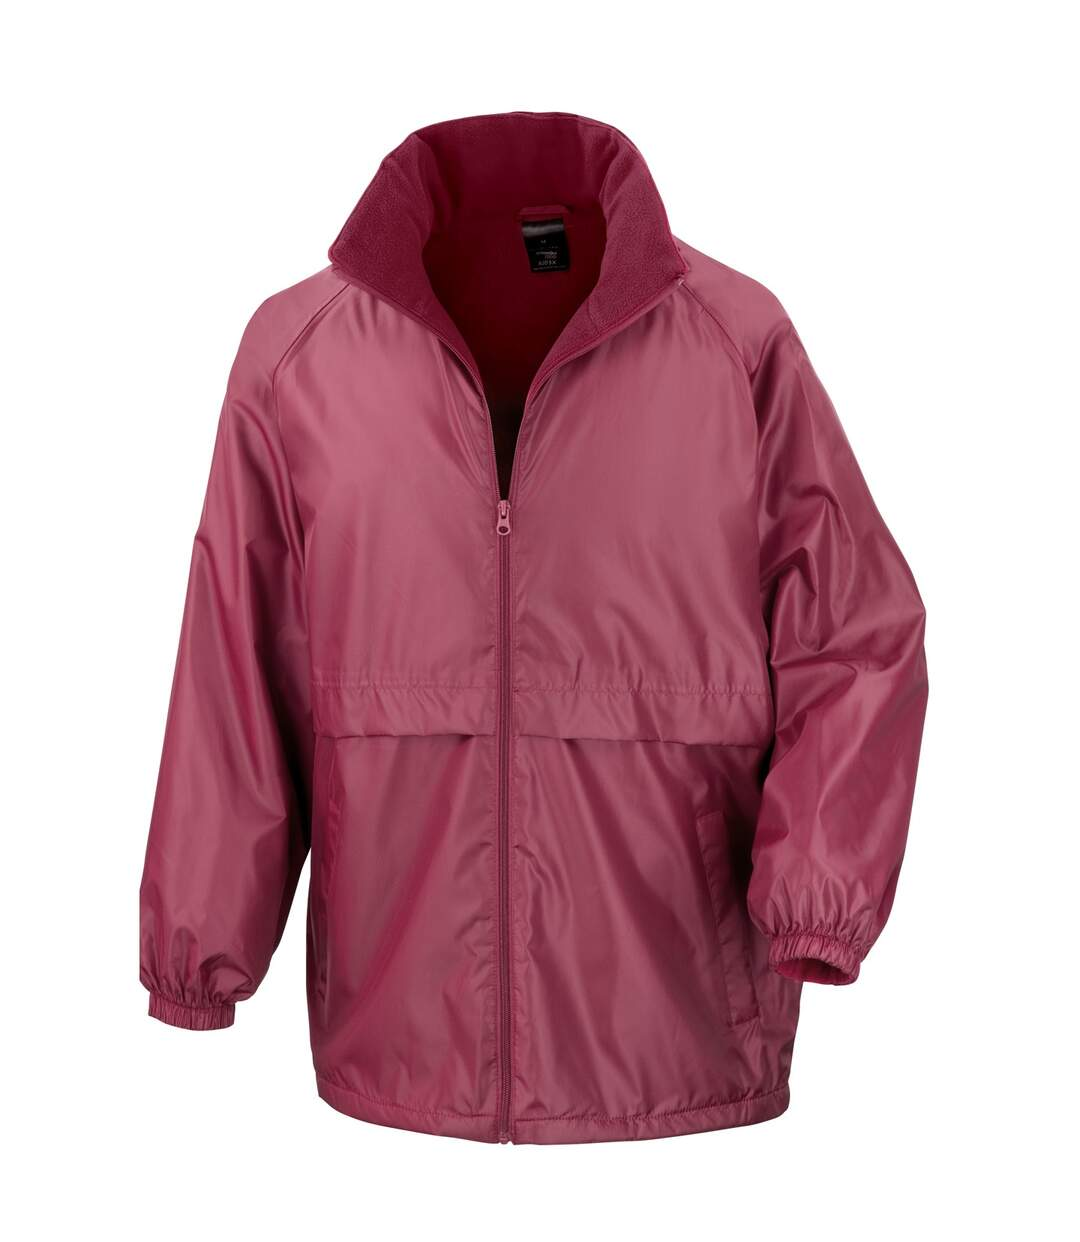 Result Mens Core Adult DWL Jacket (With Fold Away Hood) (Navy Blue) - UTBC896